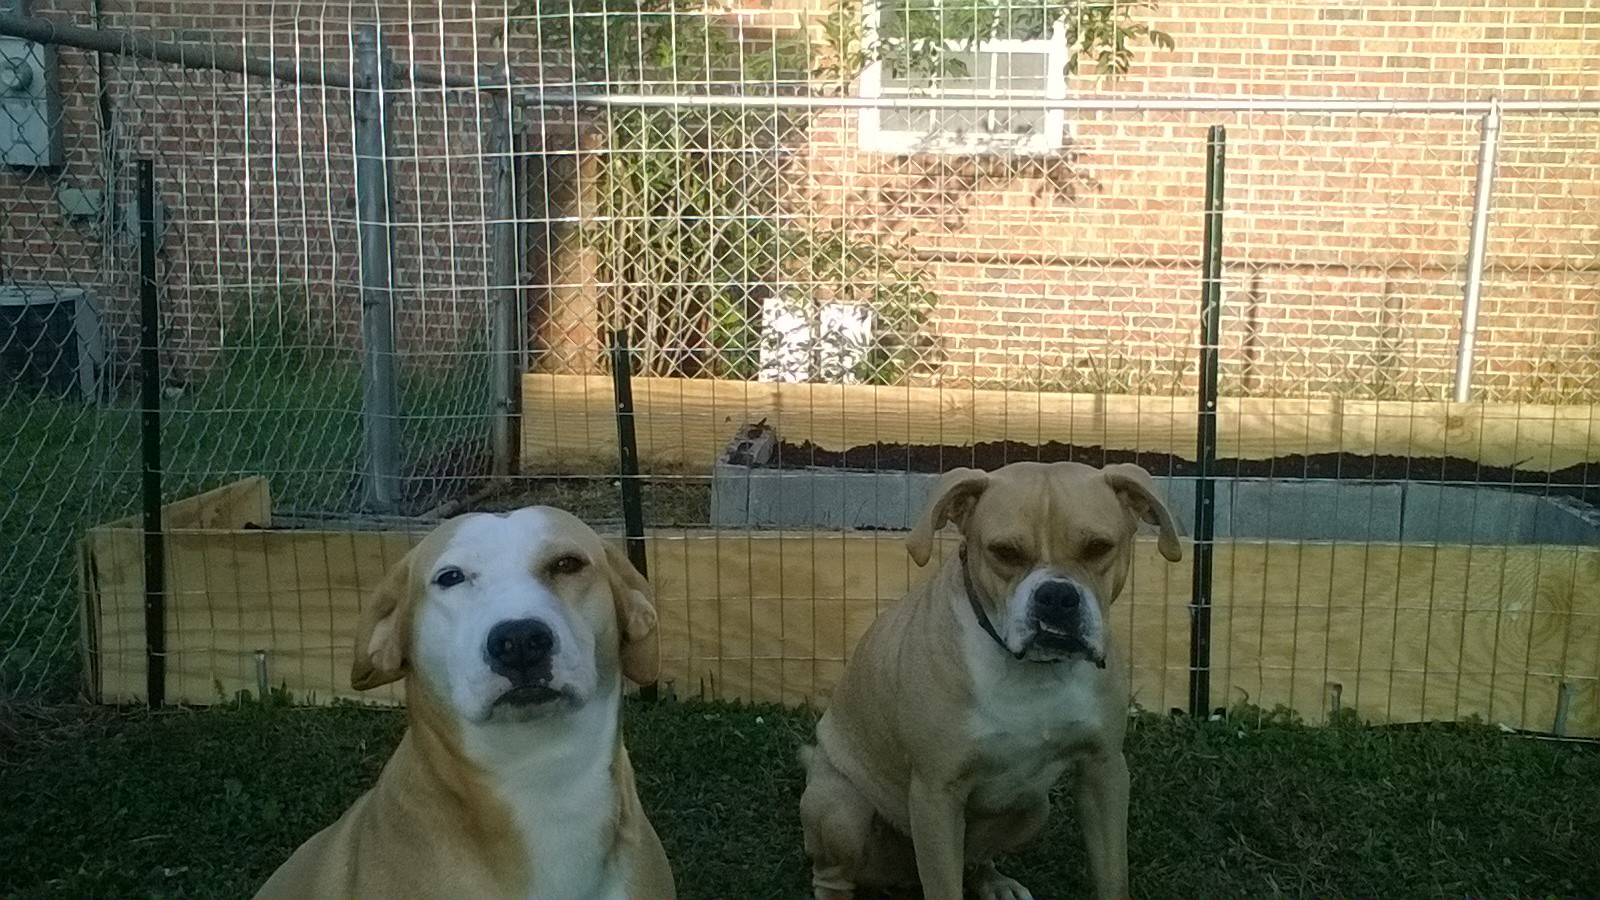 Butterscotch (on the left) and Bruiser (on the right) don't look too happy about being kept out of the garden!